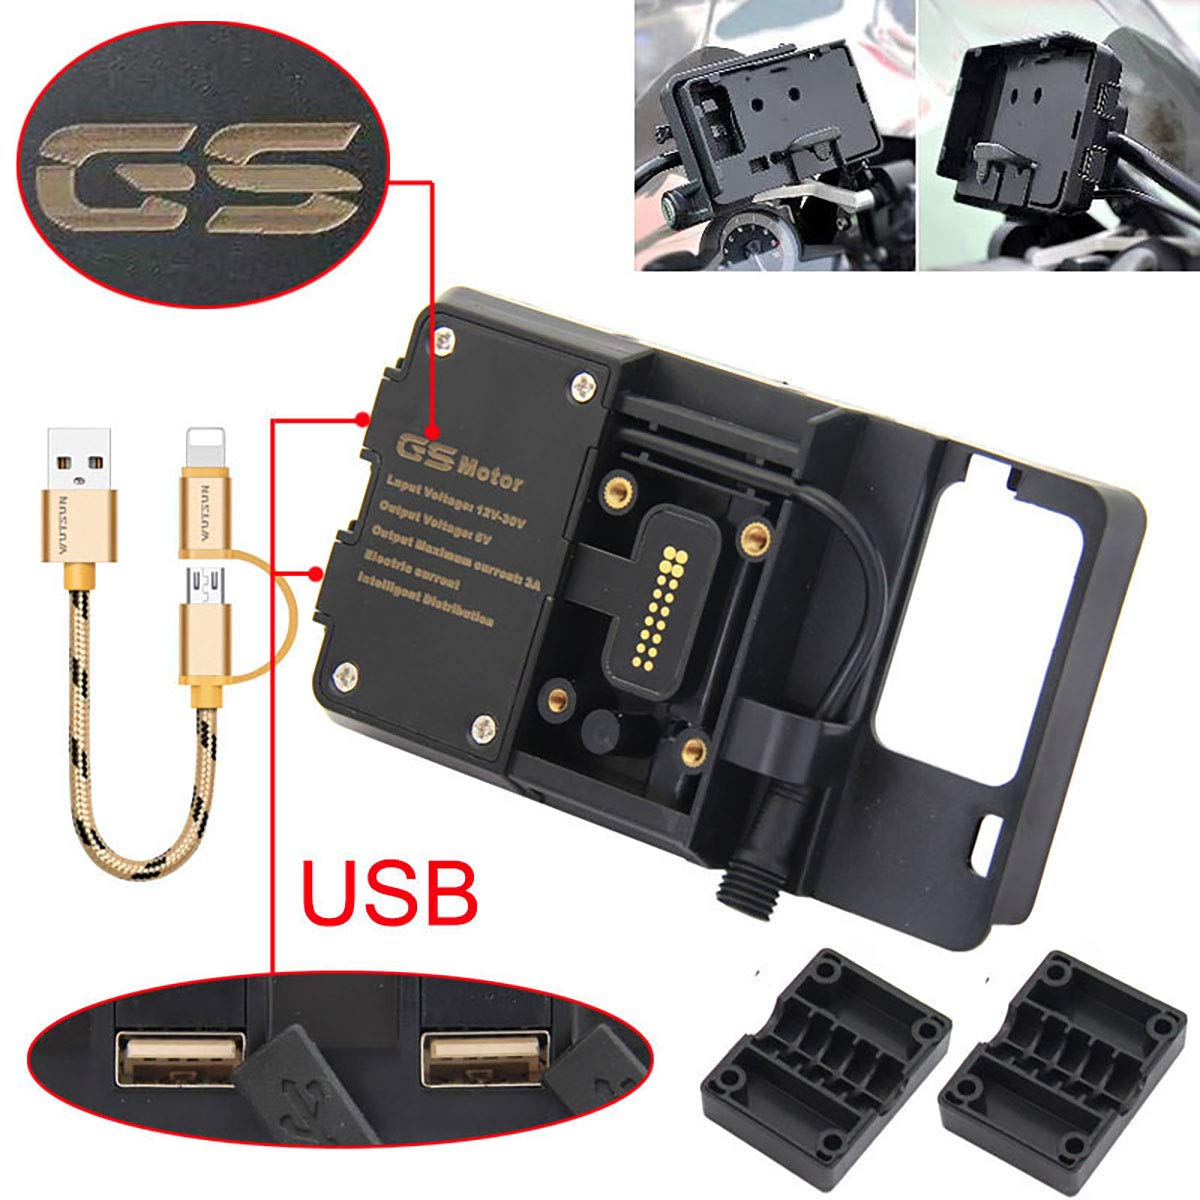 For BMW R1200GS Mobile Phone Navigation Bracket ADV F700 800GS CRF1000L Africa Twin For Honda Motorcycle USB Charging 12MM Mount R&P